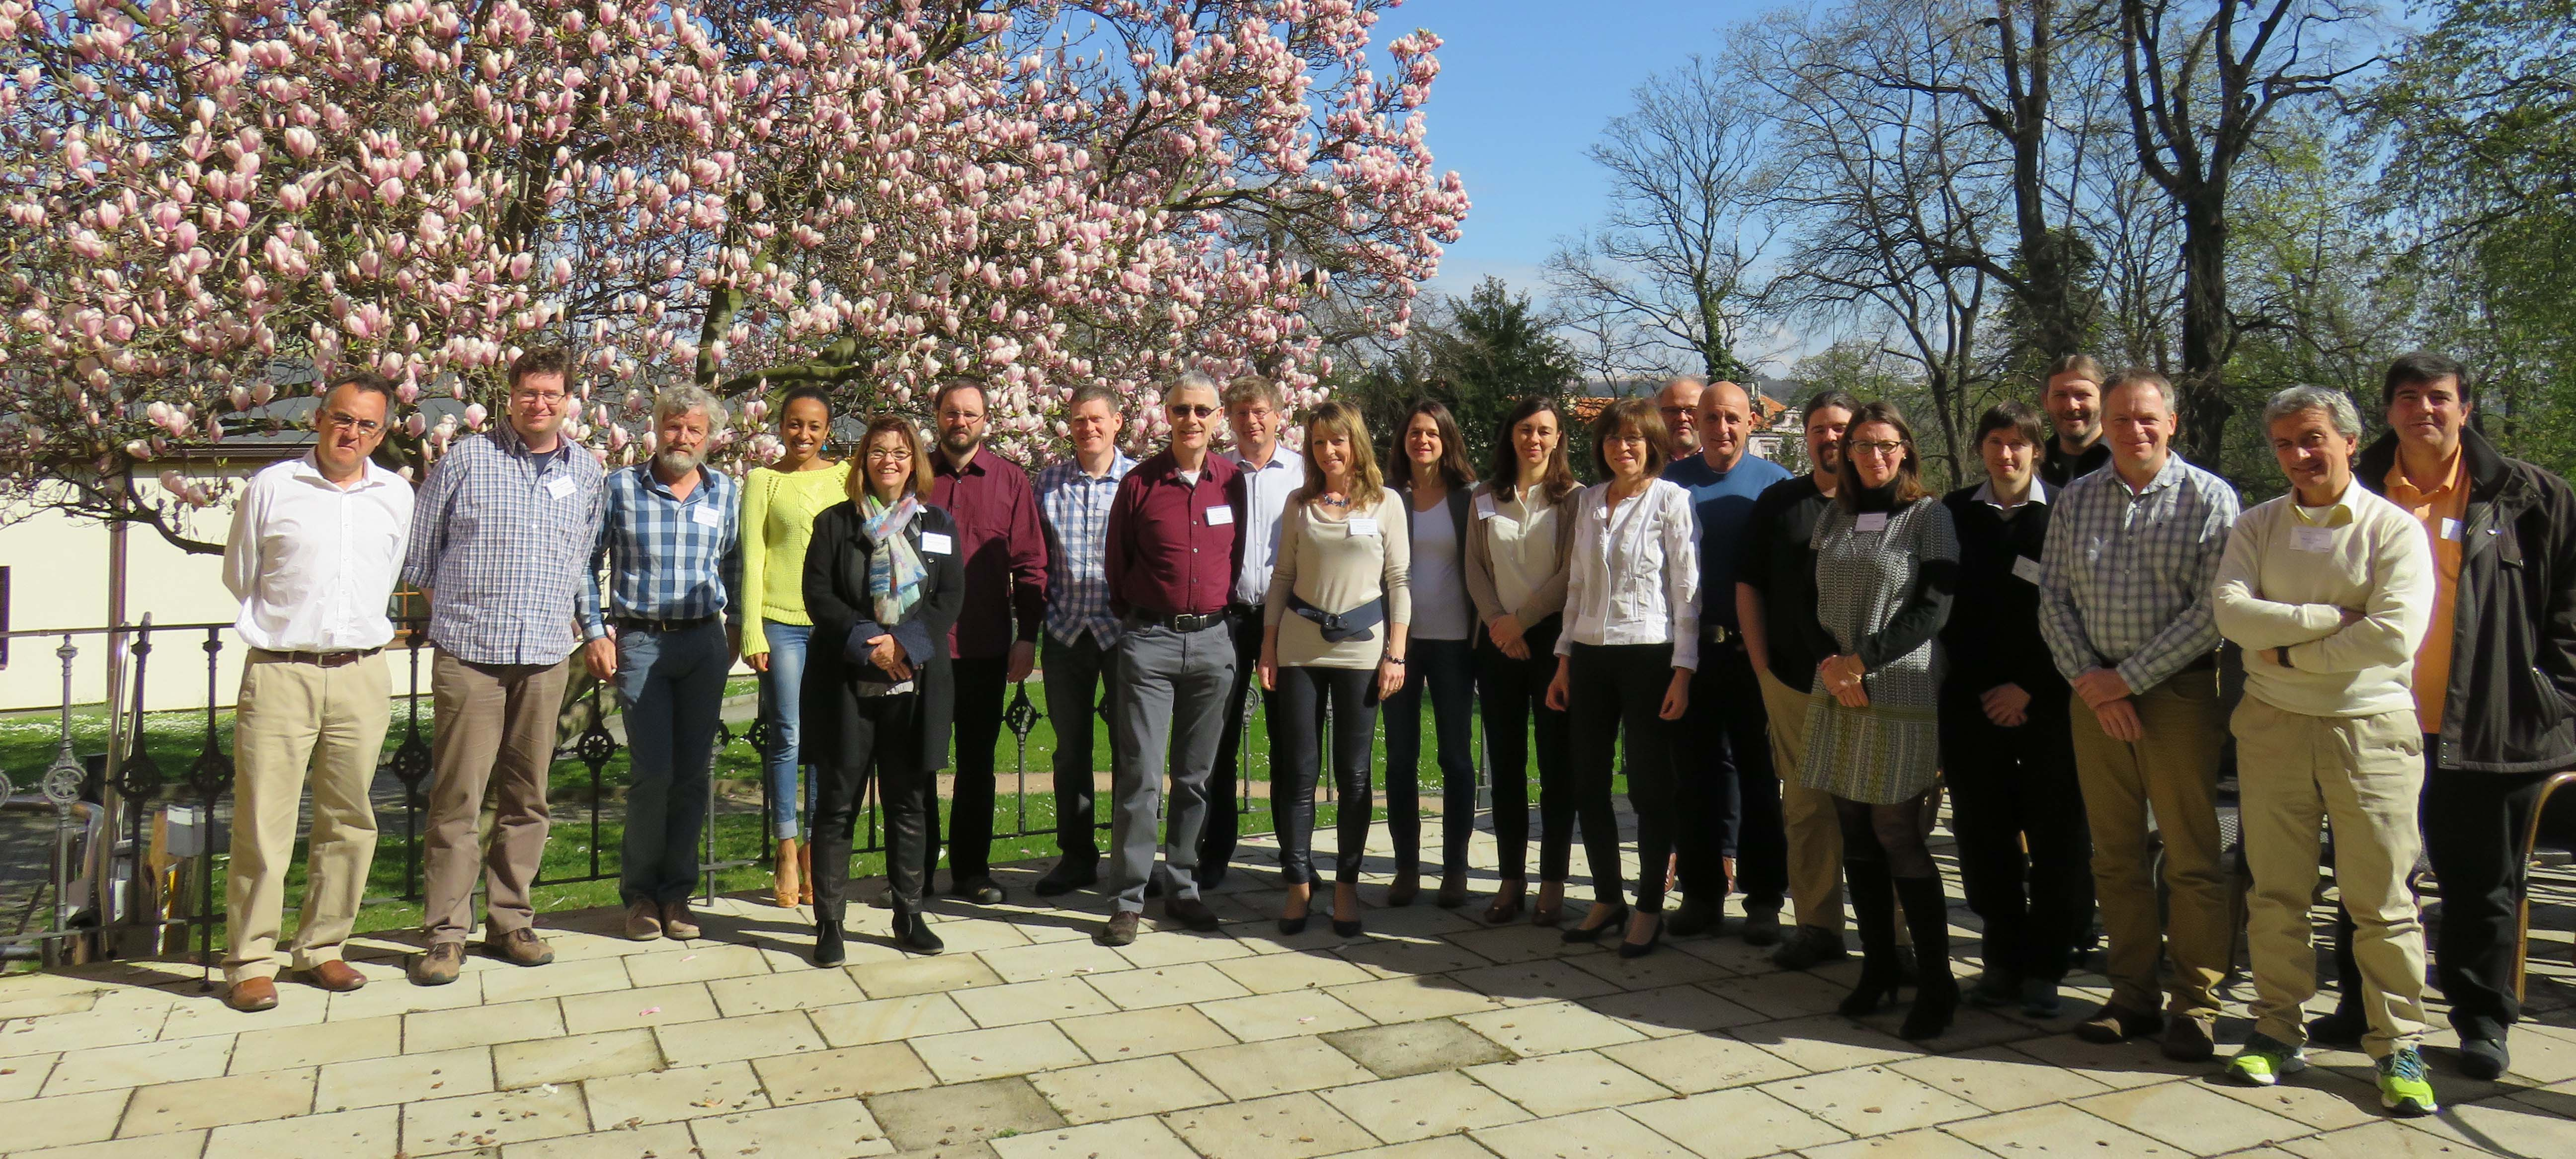 EUFAR2 General Assembly 03, Group Photo, Vila Lanna, Prague, April 2016